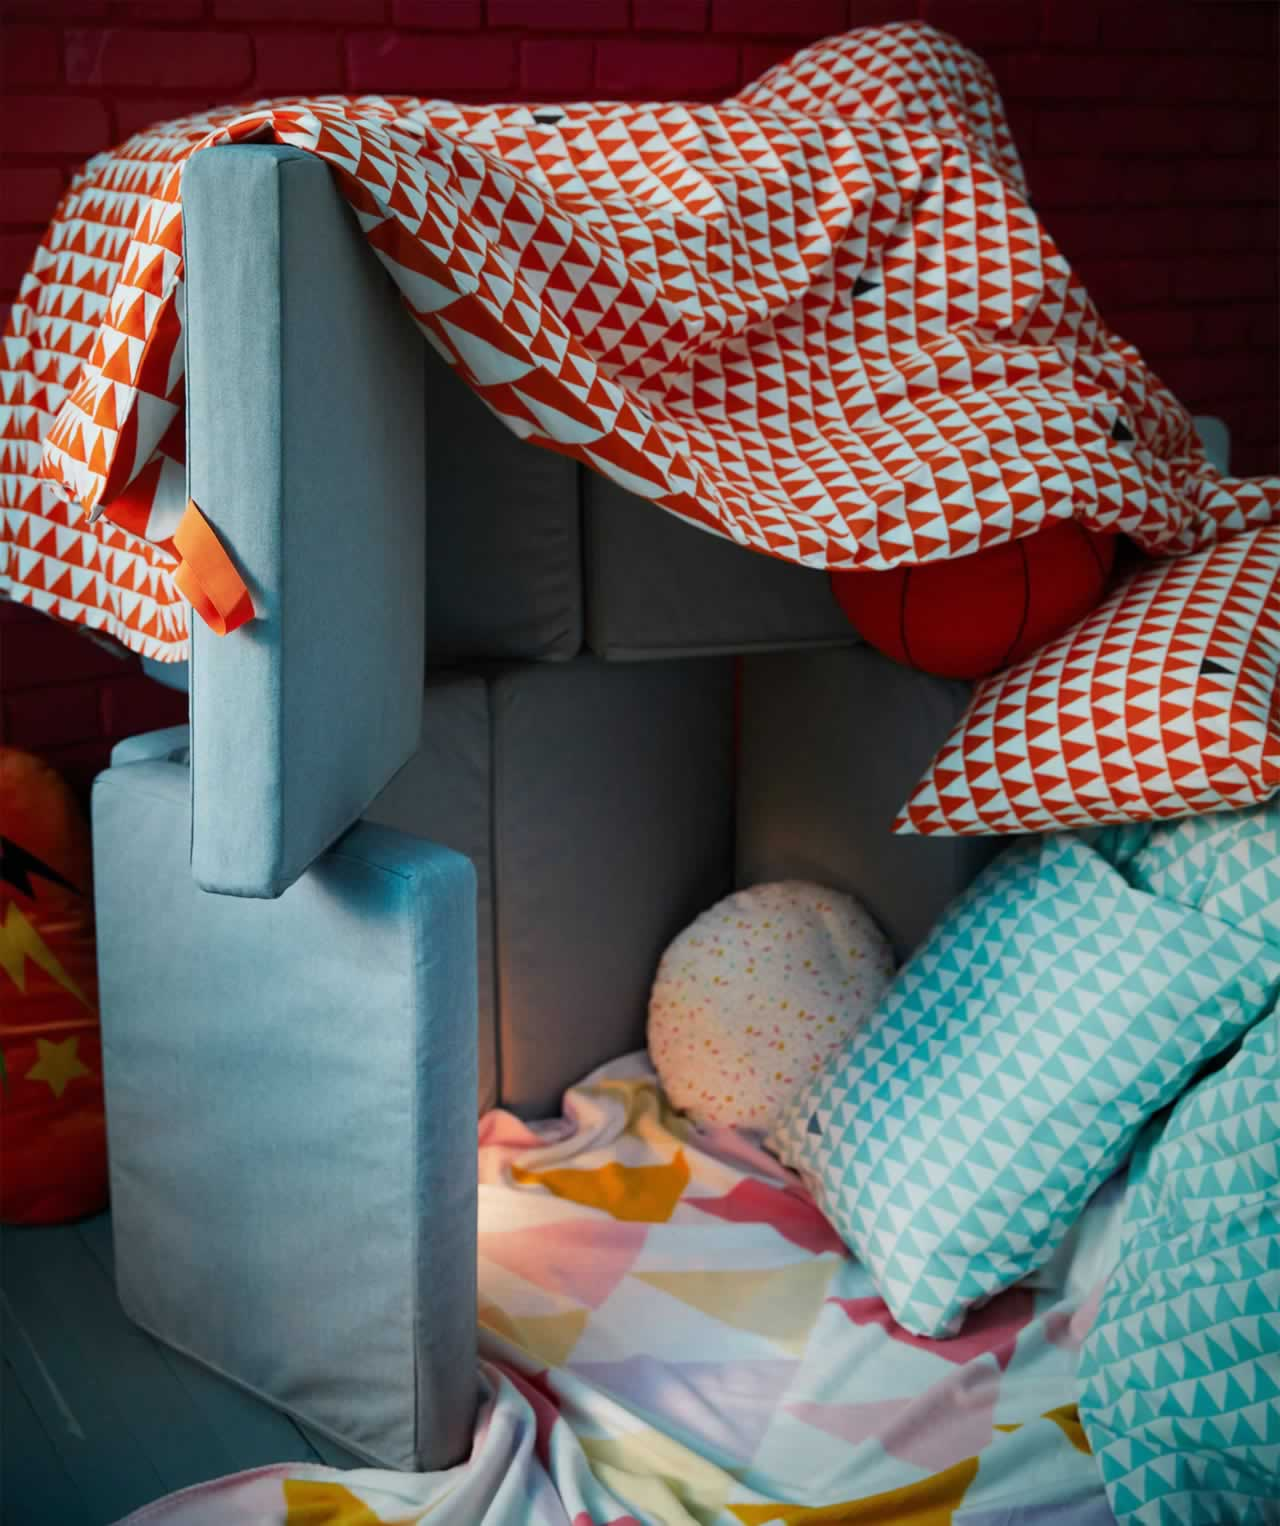 IKEA Ideas - Tips for a playful children's sleepover